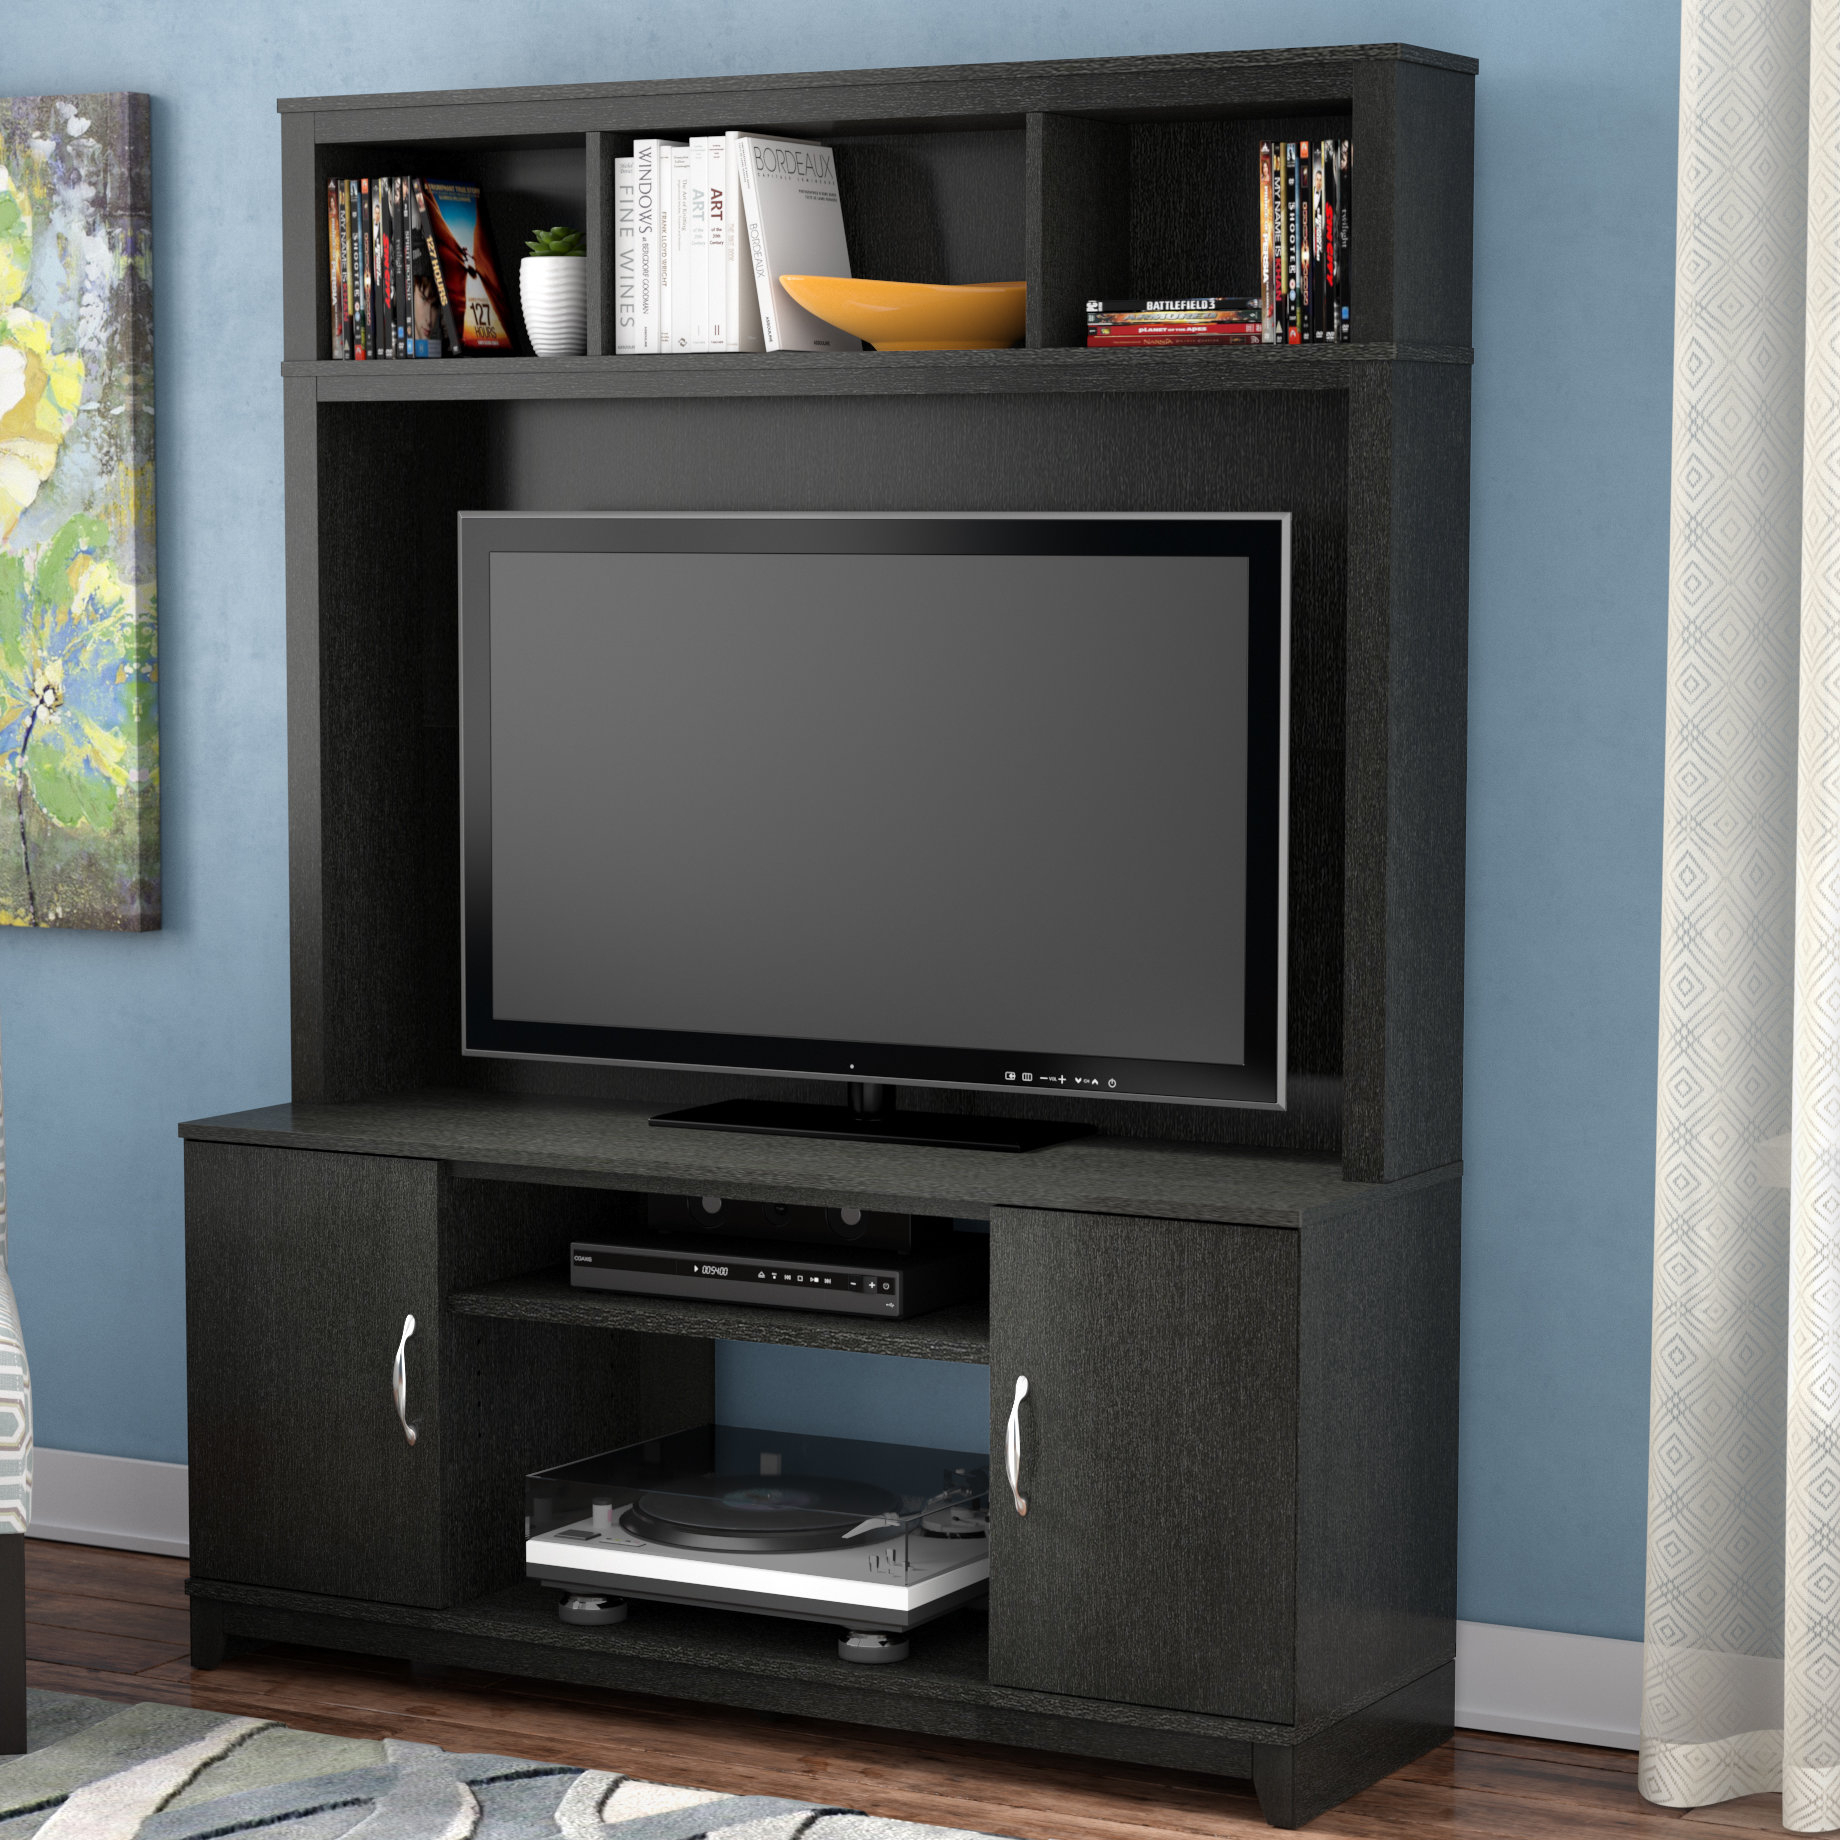 Tv Stands With Hutch You'll Love | Wayfair With Regard To Kilian Grey 74 Inch Tv Stands (View 3 of 30)